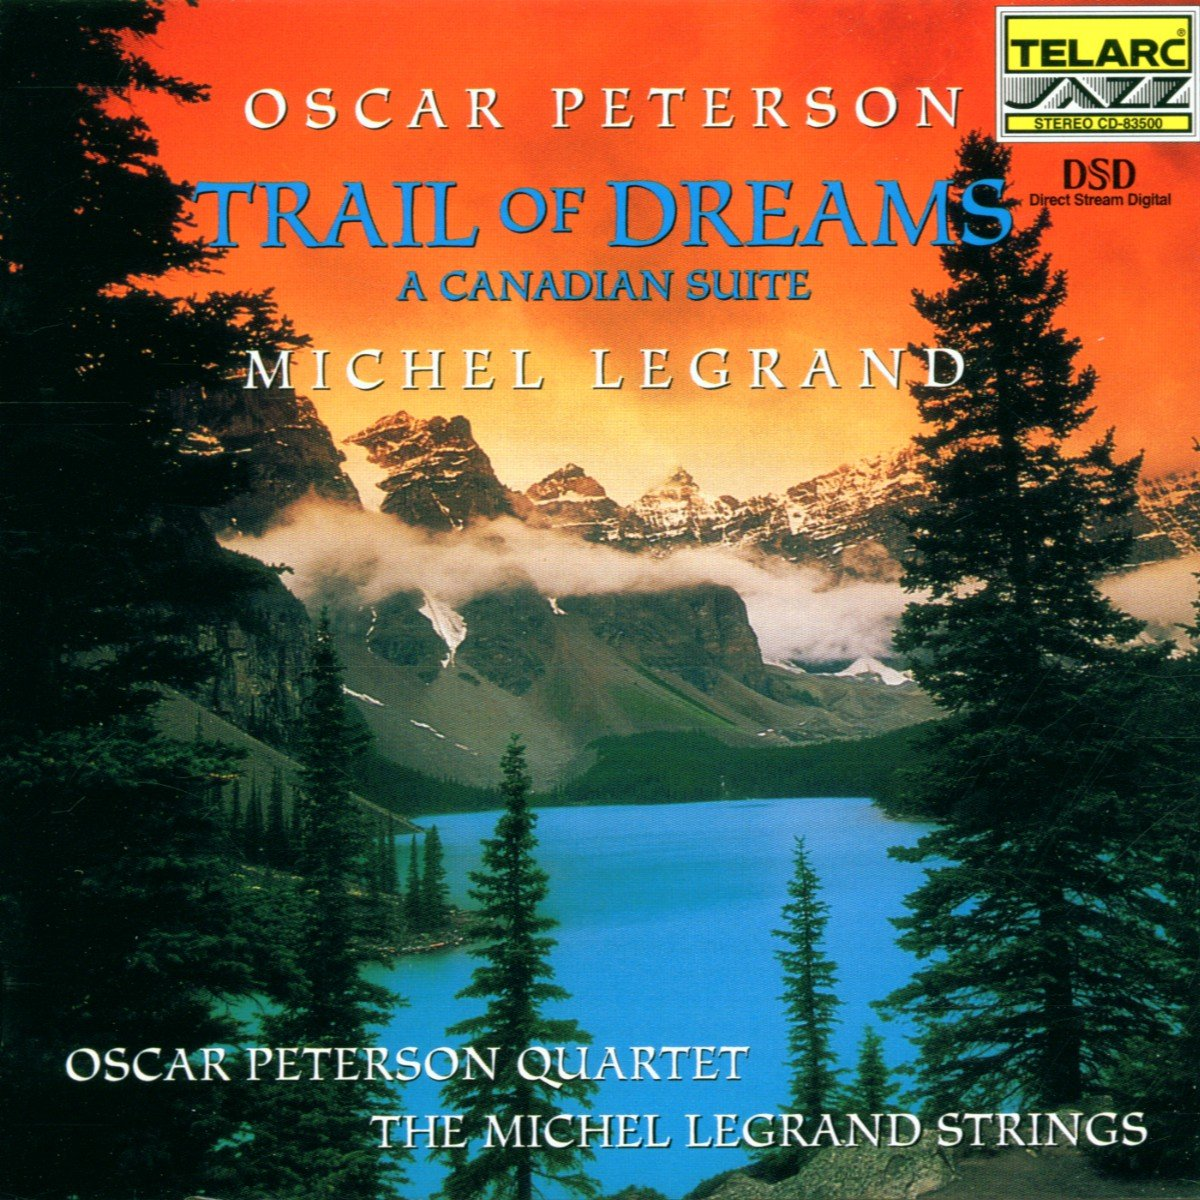 Trail of Dreams: A Canadian Suite by Telarc